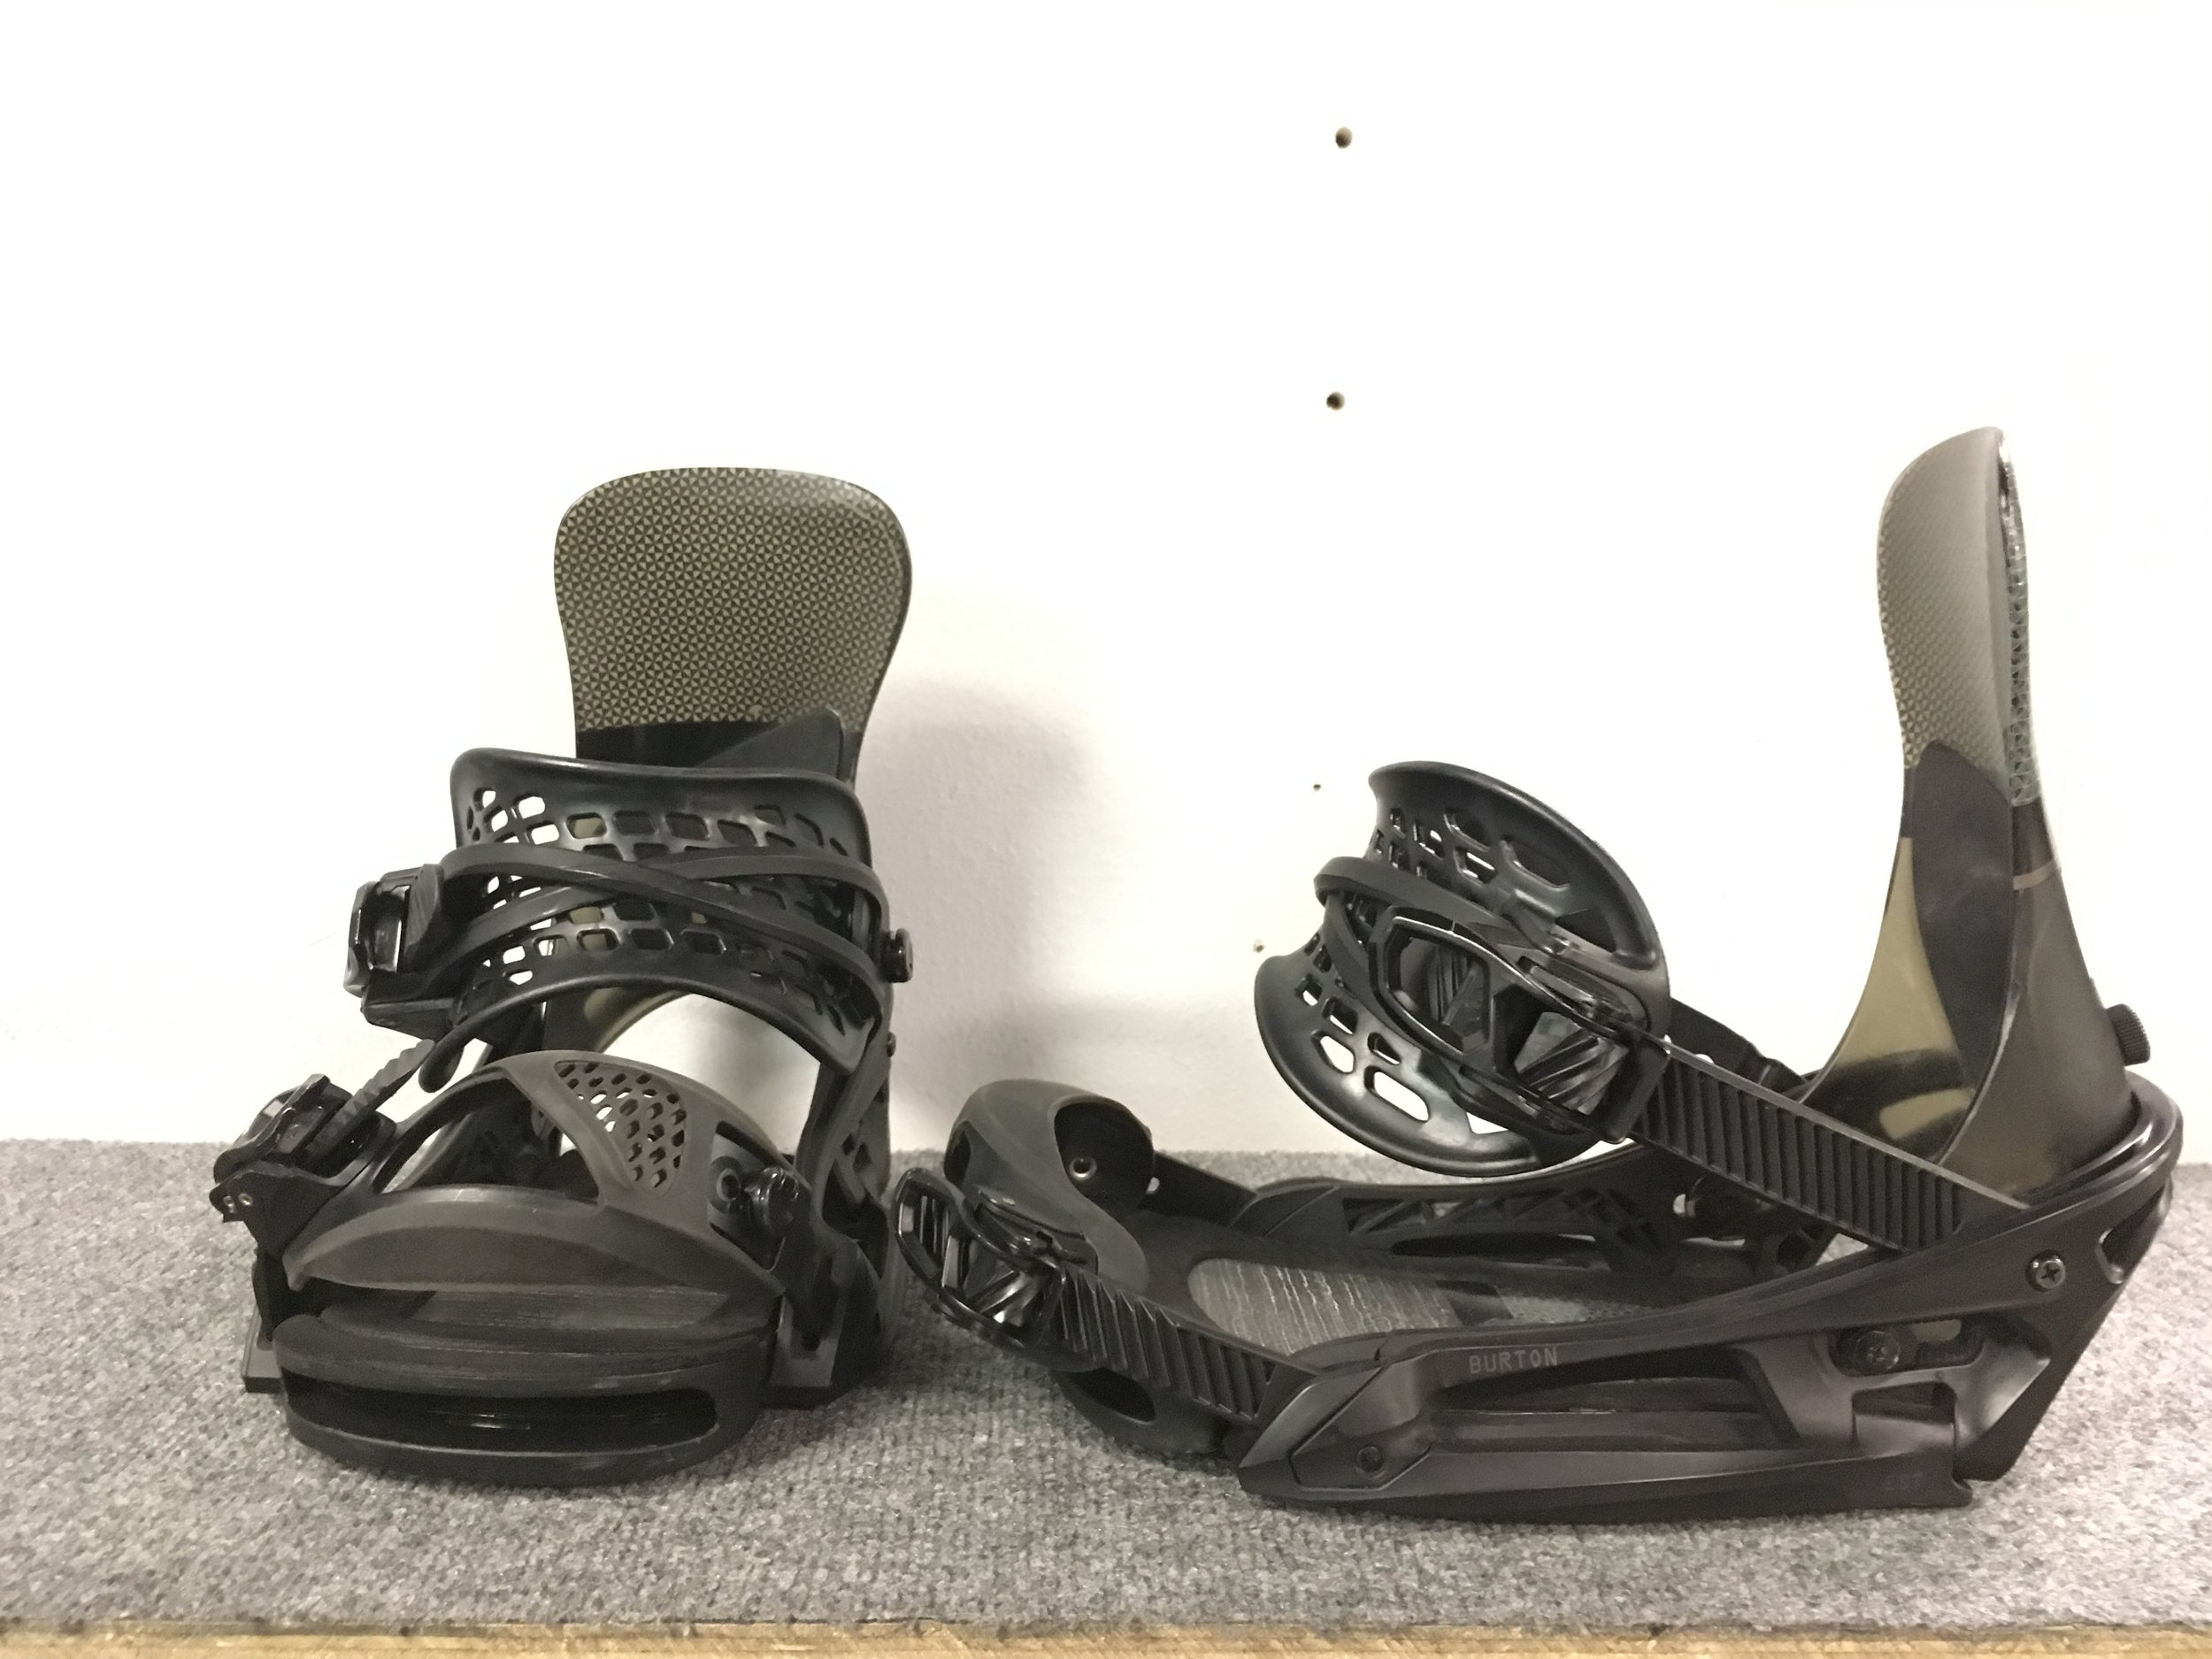 Mount it up! The Burton Diode EST is an extremely light and responsive binding that will have you bouncing through the trees and leaving a scar on the hill. Retail for the pair is listed at $440 but we can get you out the door for $159! The size is a medium.